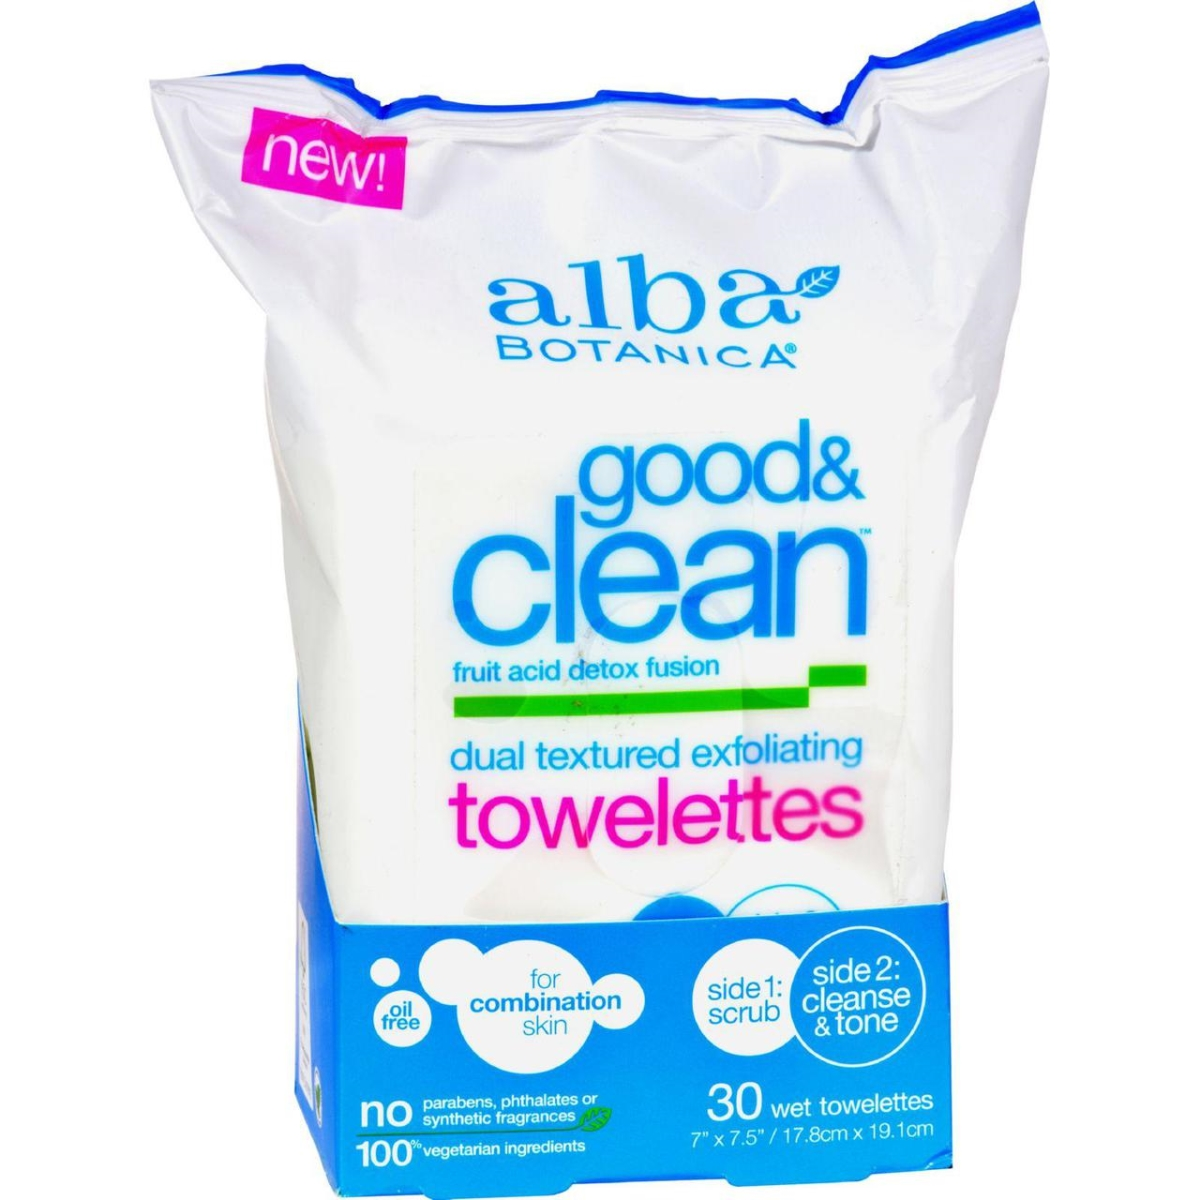 Alba Botanica HG1208347 Good & Clean Exfoliating Towelettes 30 Count